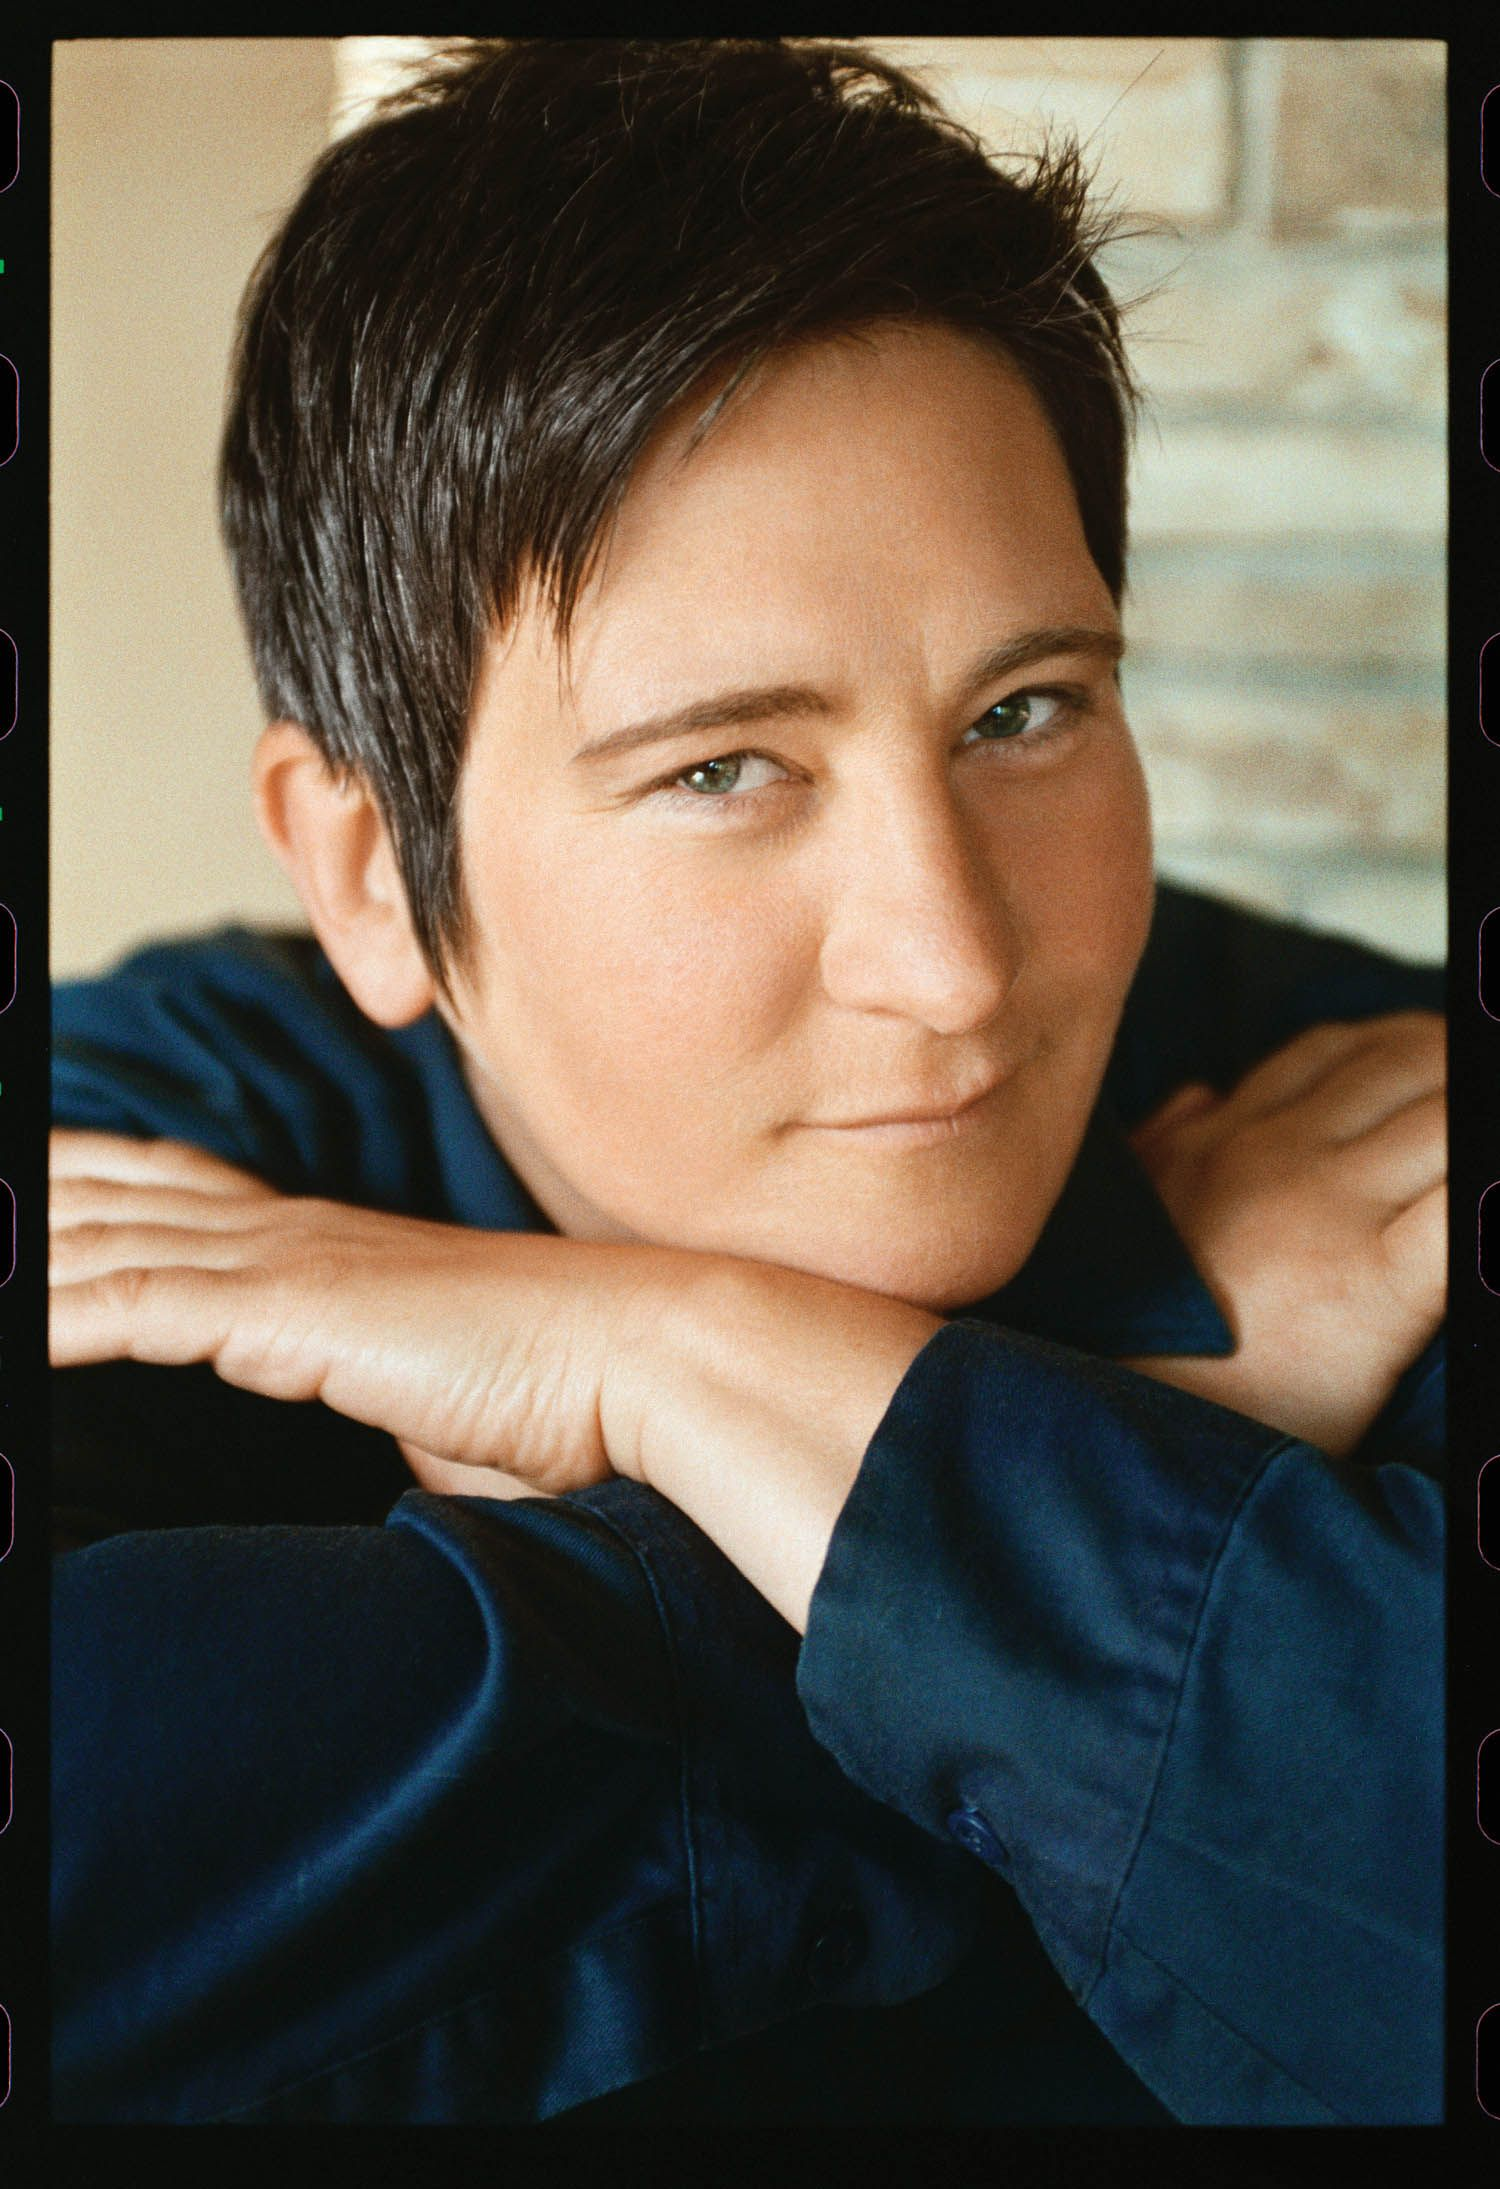 Kd Lang Quite Possibly The Most Beautiful Woman On Earth Her Voice